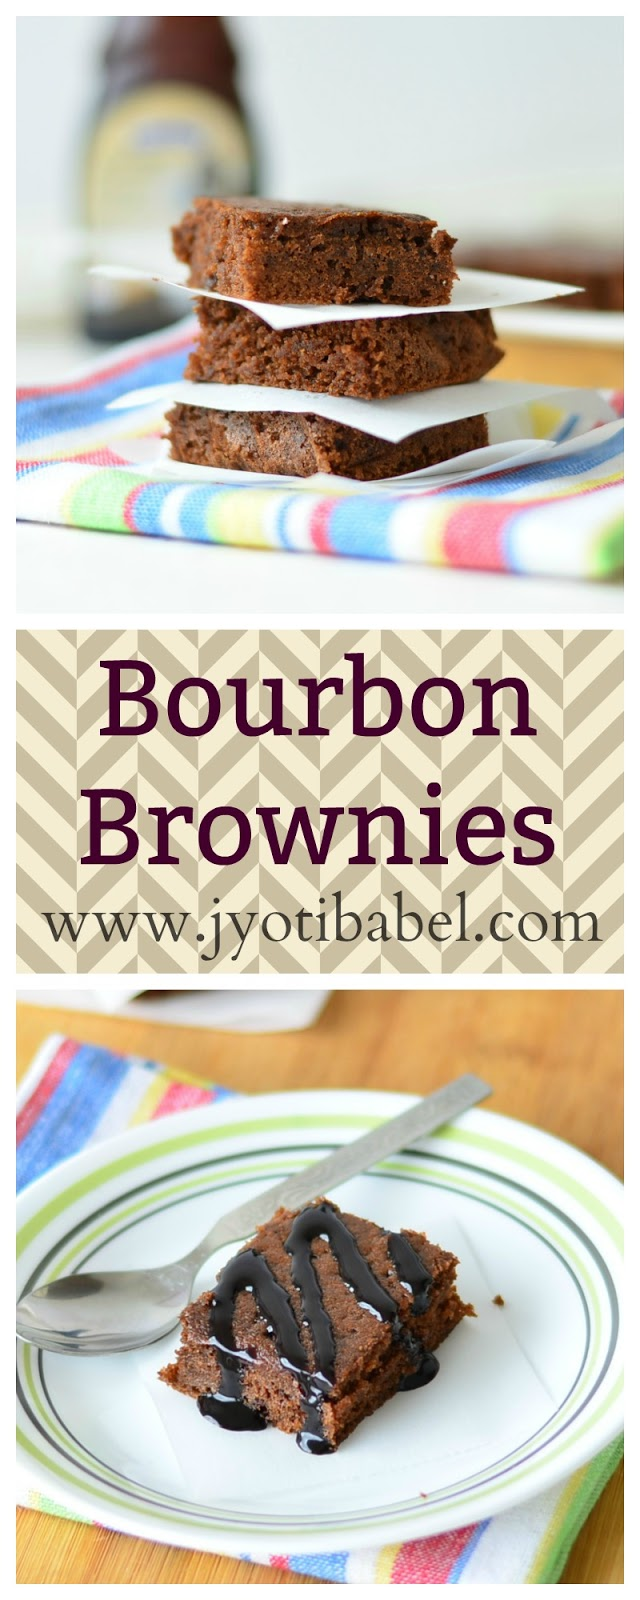 Bourbon Biscuit Brownies | A simple quick-fix brownie recipe where bourbon biscuits is the star ingredient. www.jyotibabel.com